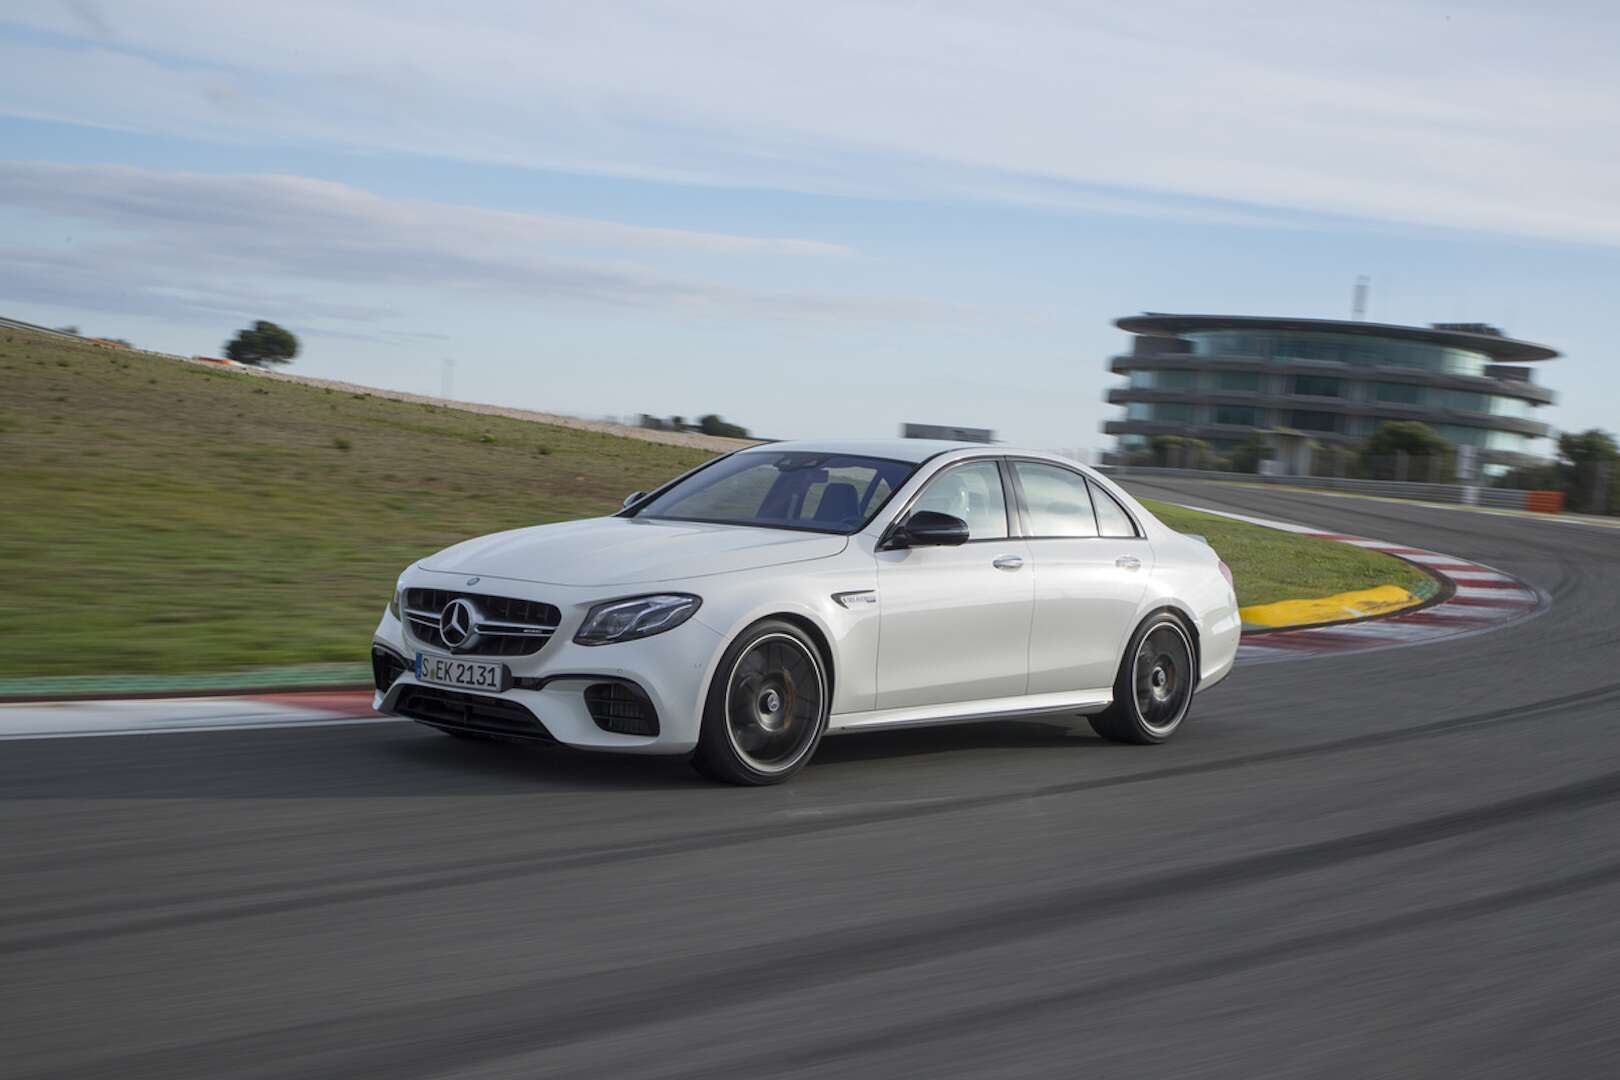 2018 mercedes amg e63 s review the rock 39 em sock 39 em for Mercedes benz e63 amg price